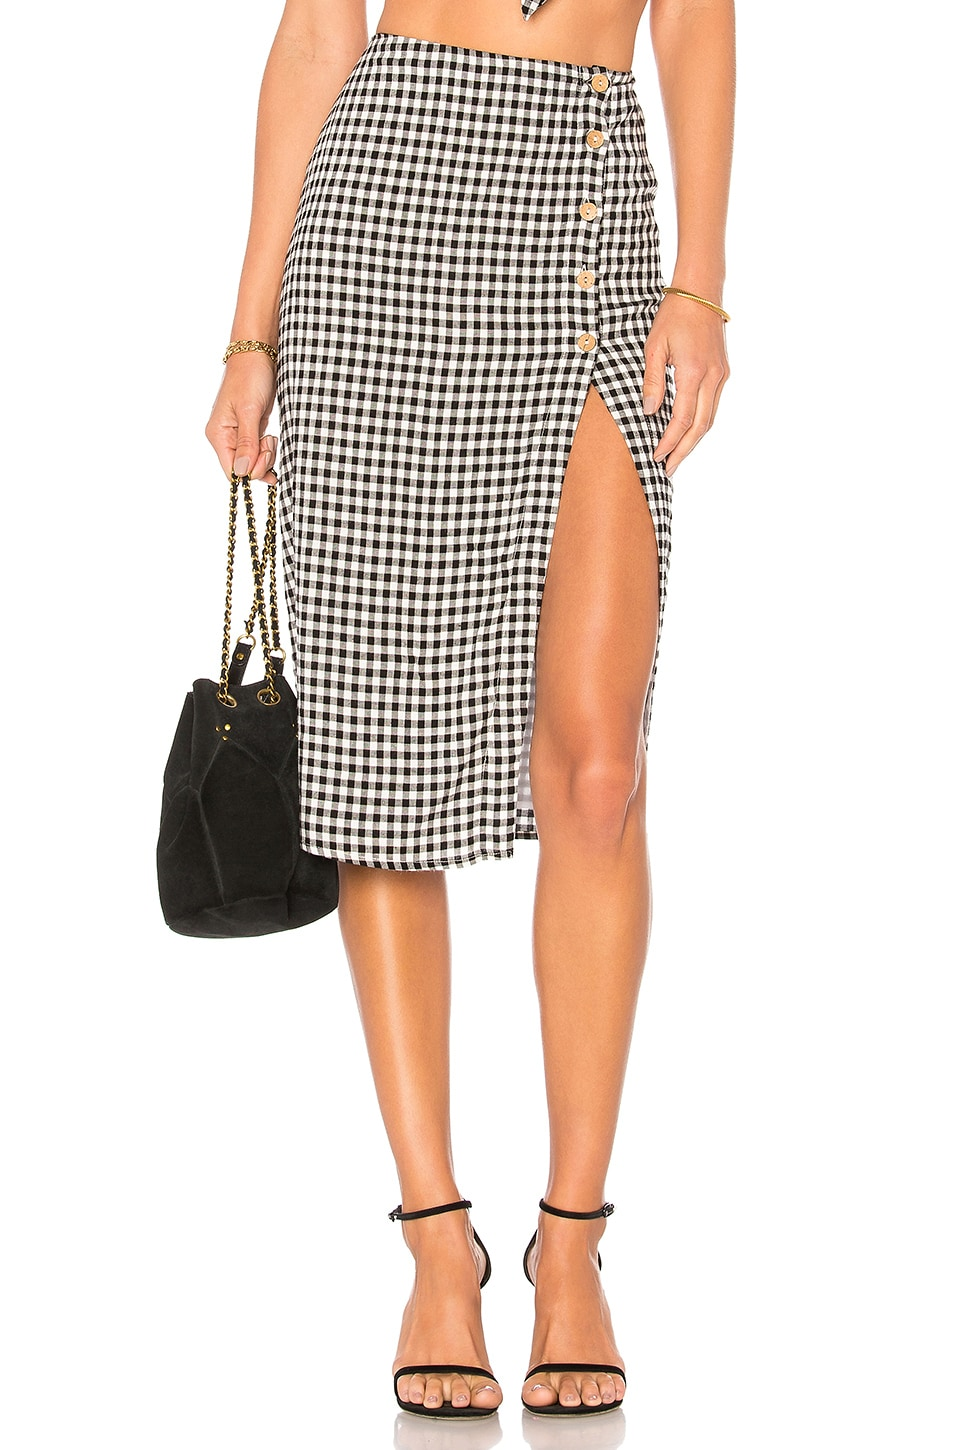 Privacy Please Burbank Skirt in Black Gingham